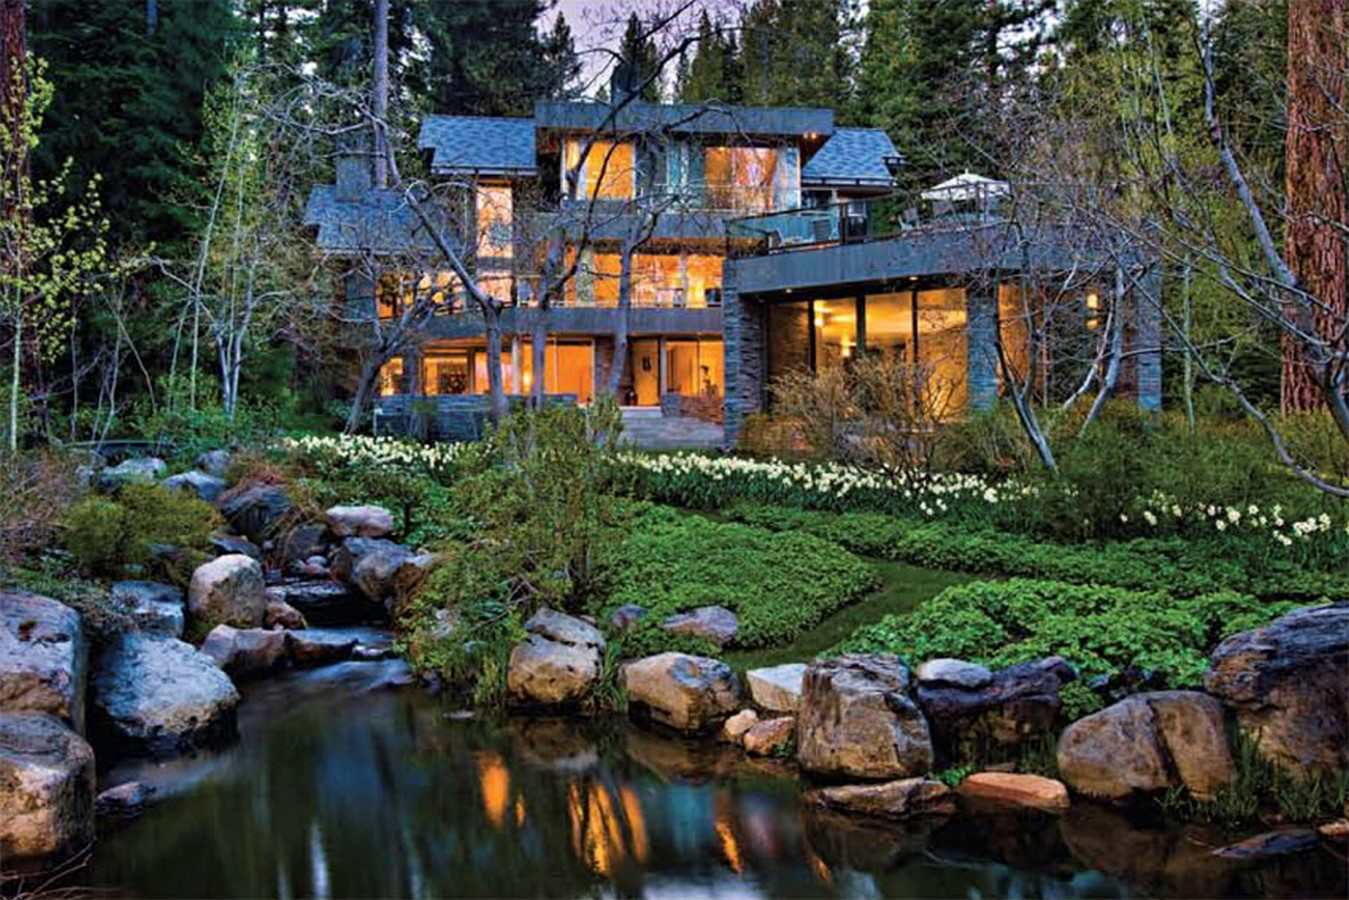 Architects in Reno - Top 40 Architects in Reno - Sheet33